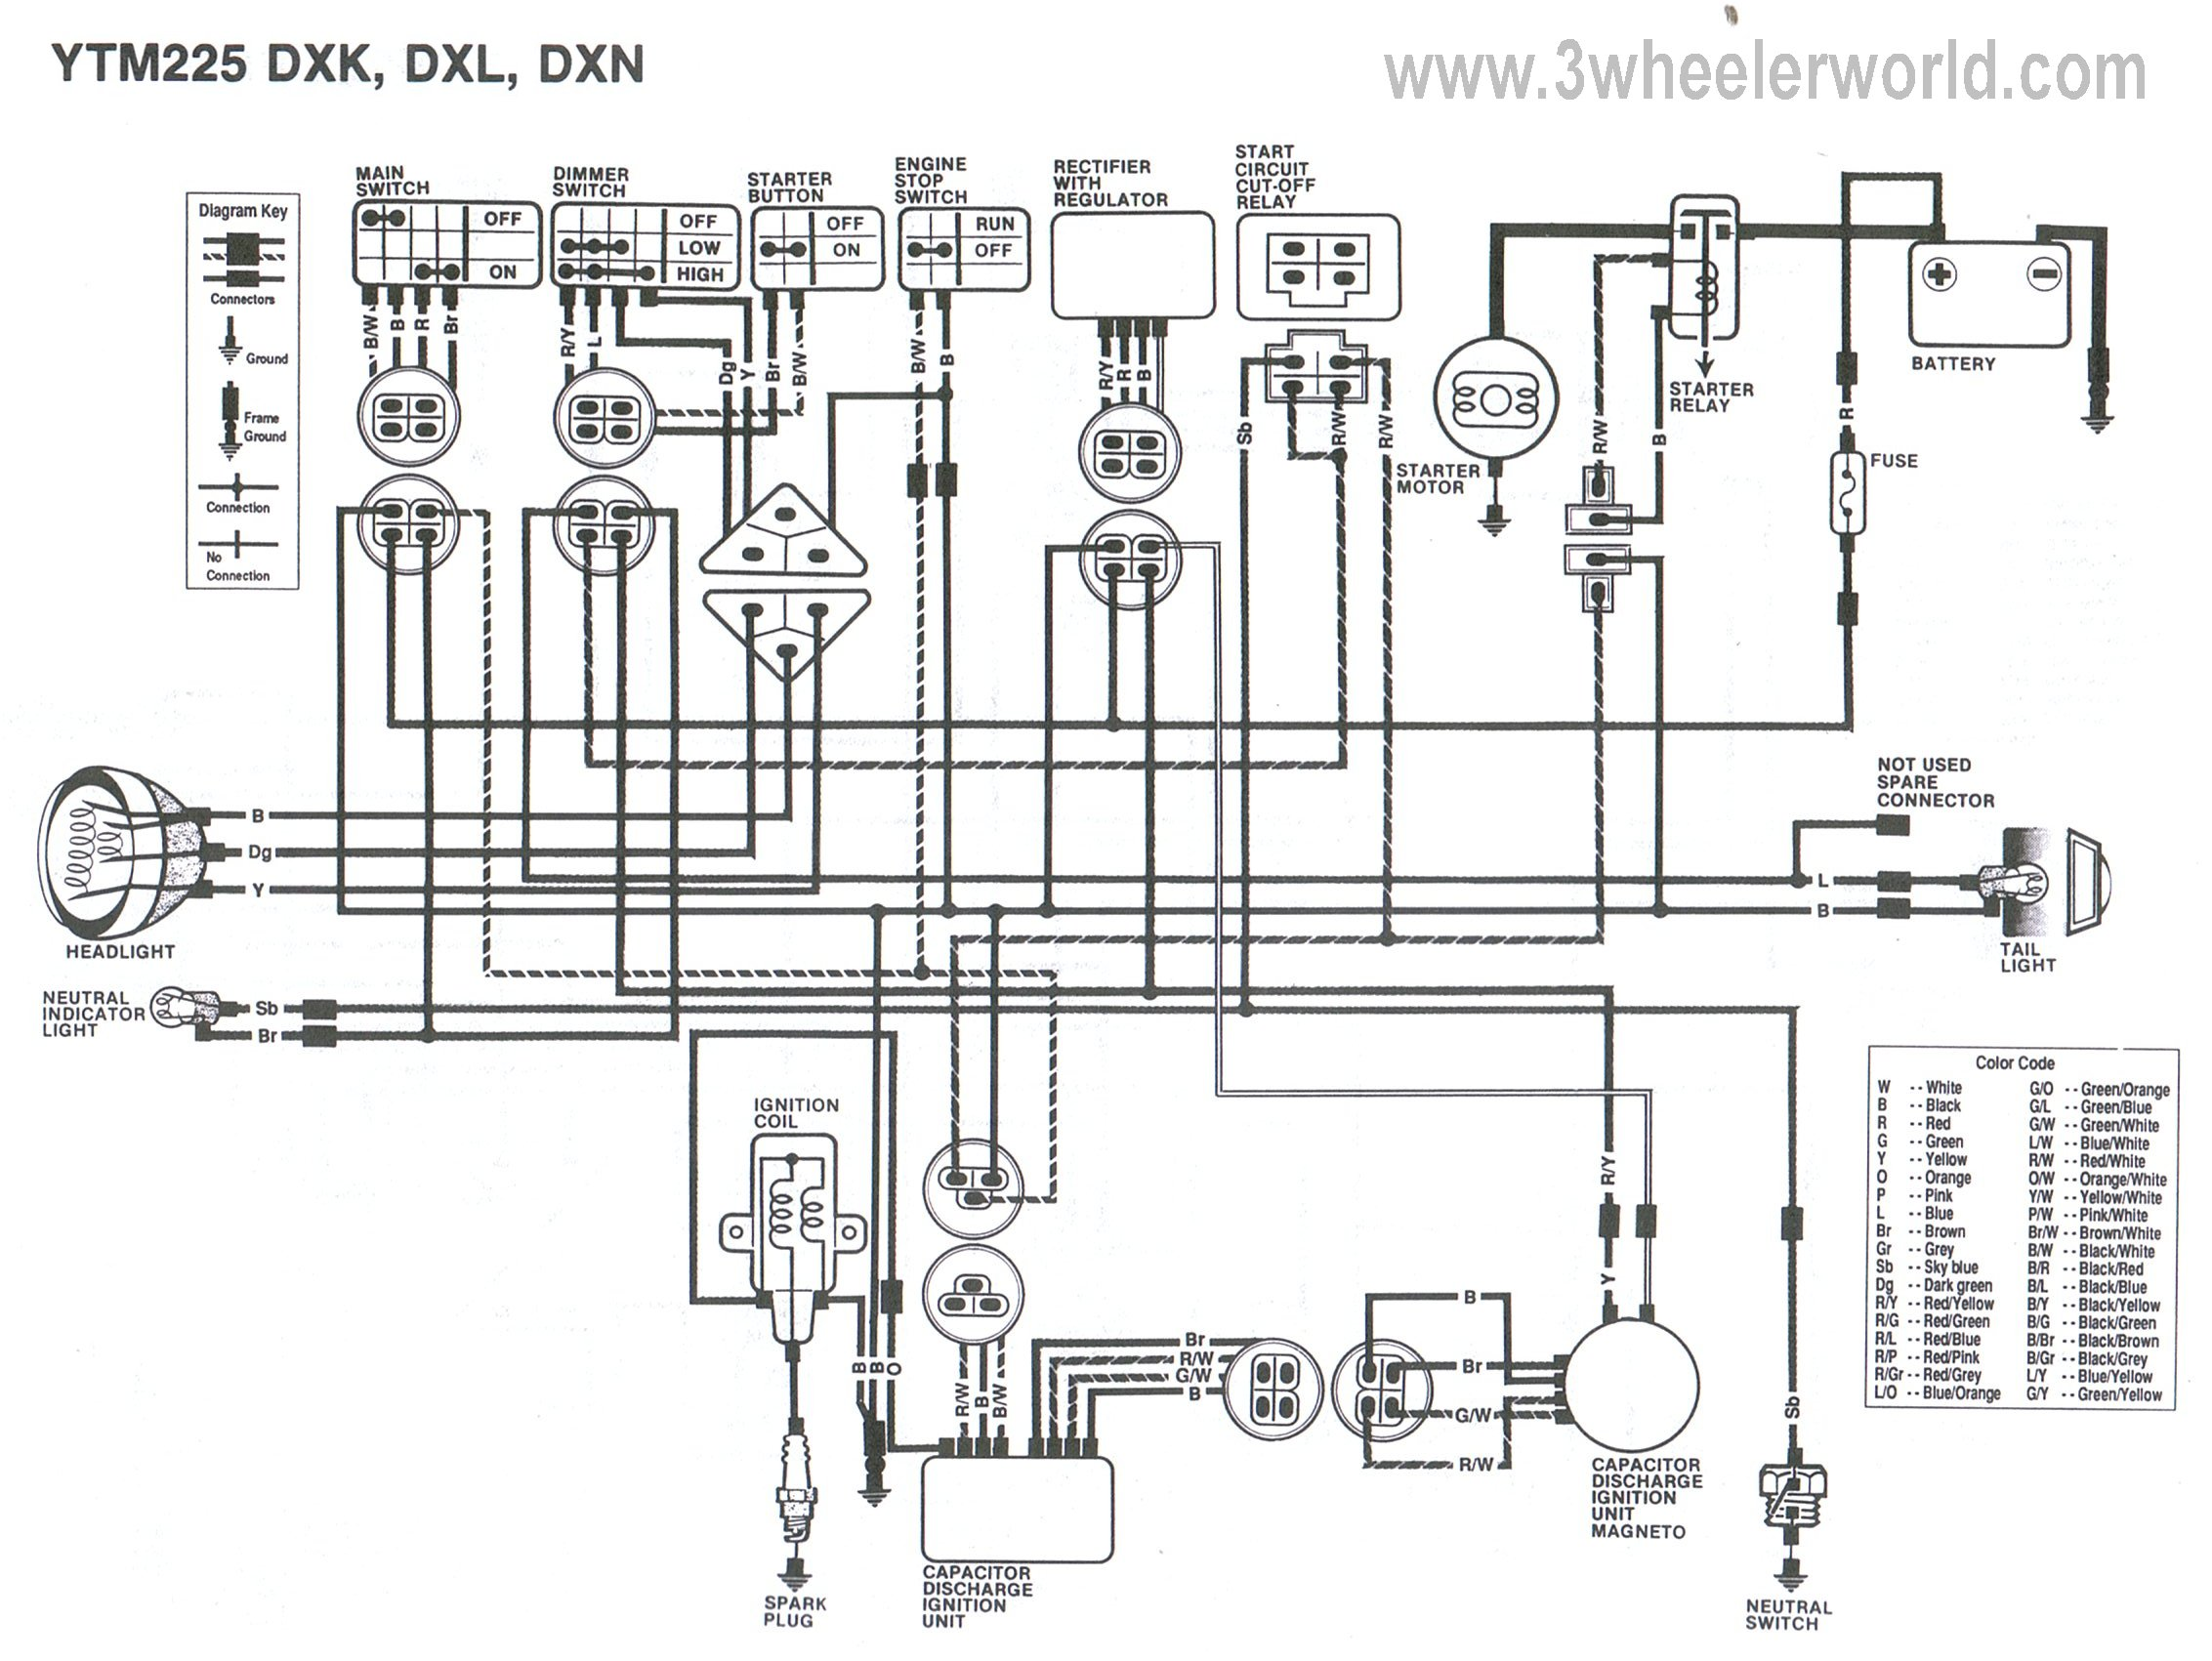 YTM225DXKDXLDXN 3 wheeler world tech help yamaha wiring diagrams yamaha moto 4 250 wiring diagrams at couponss.co